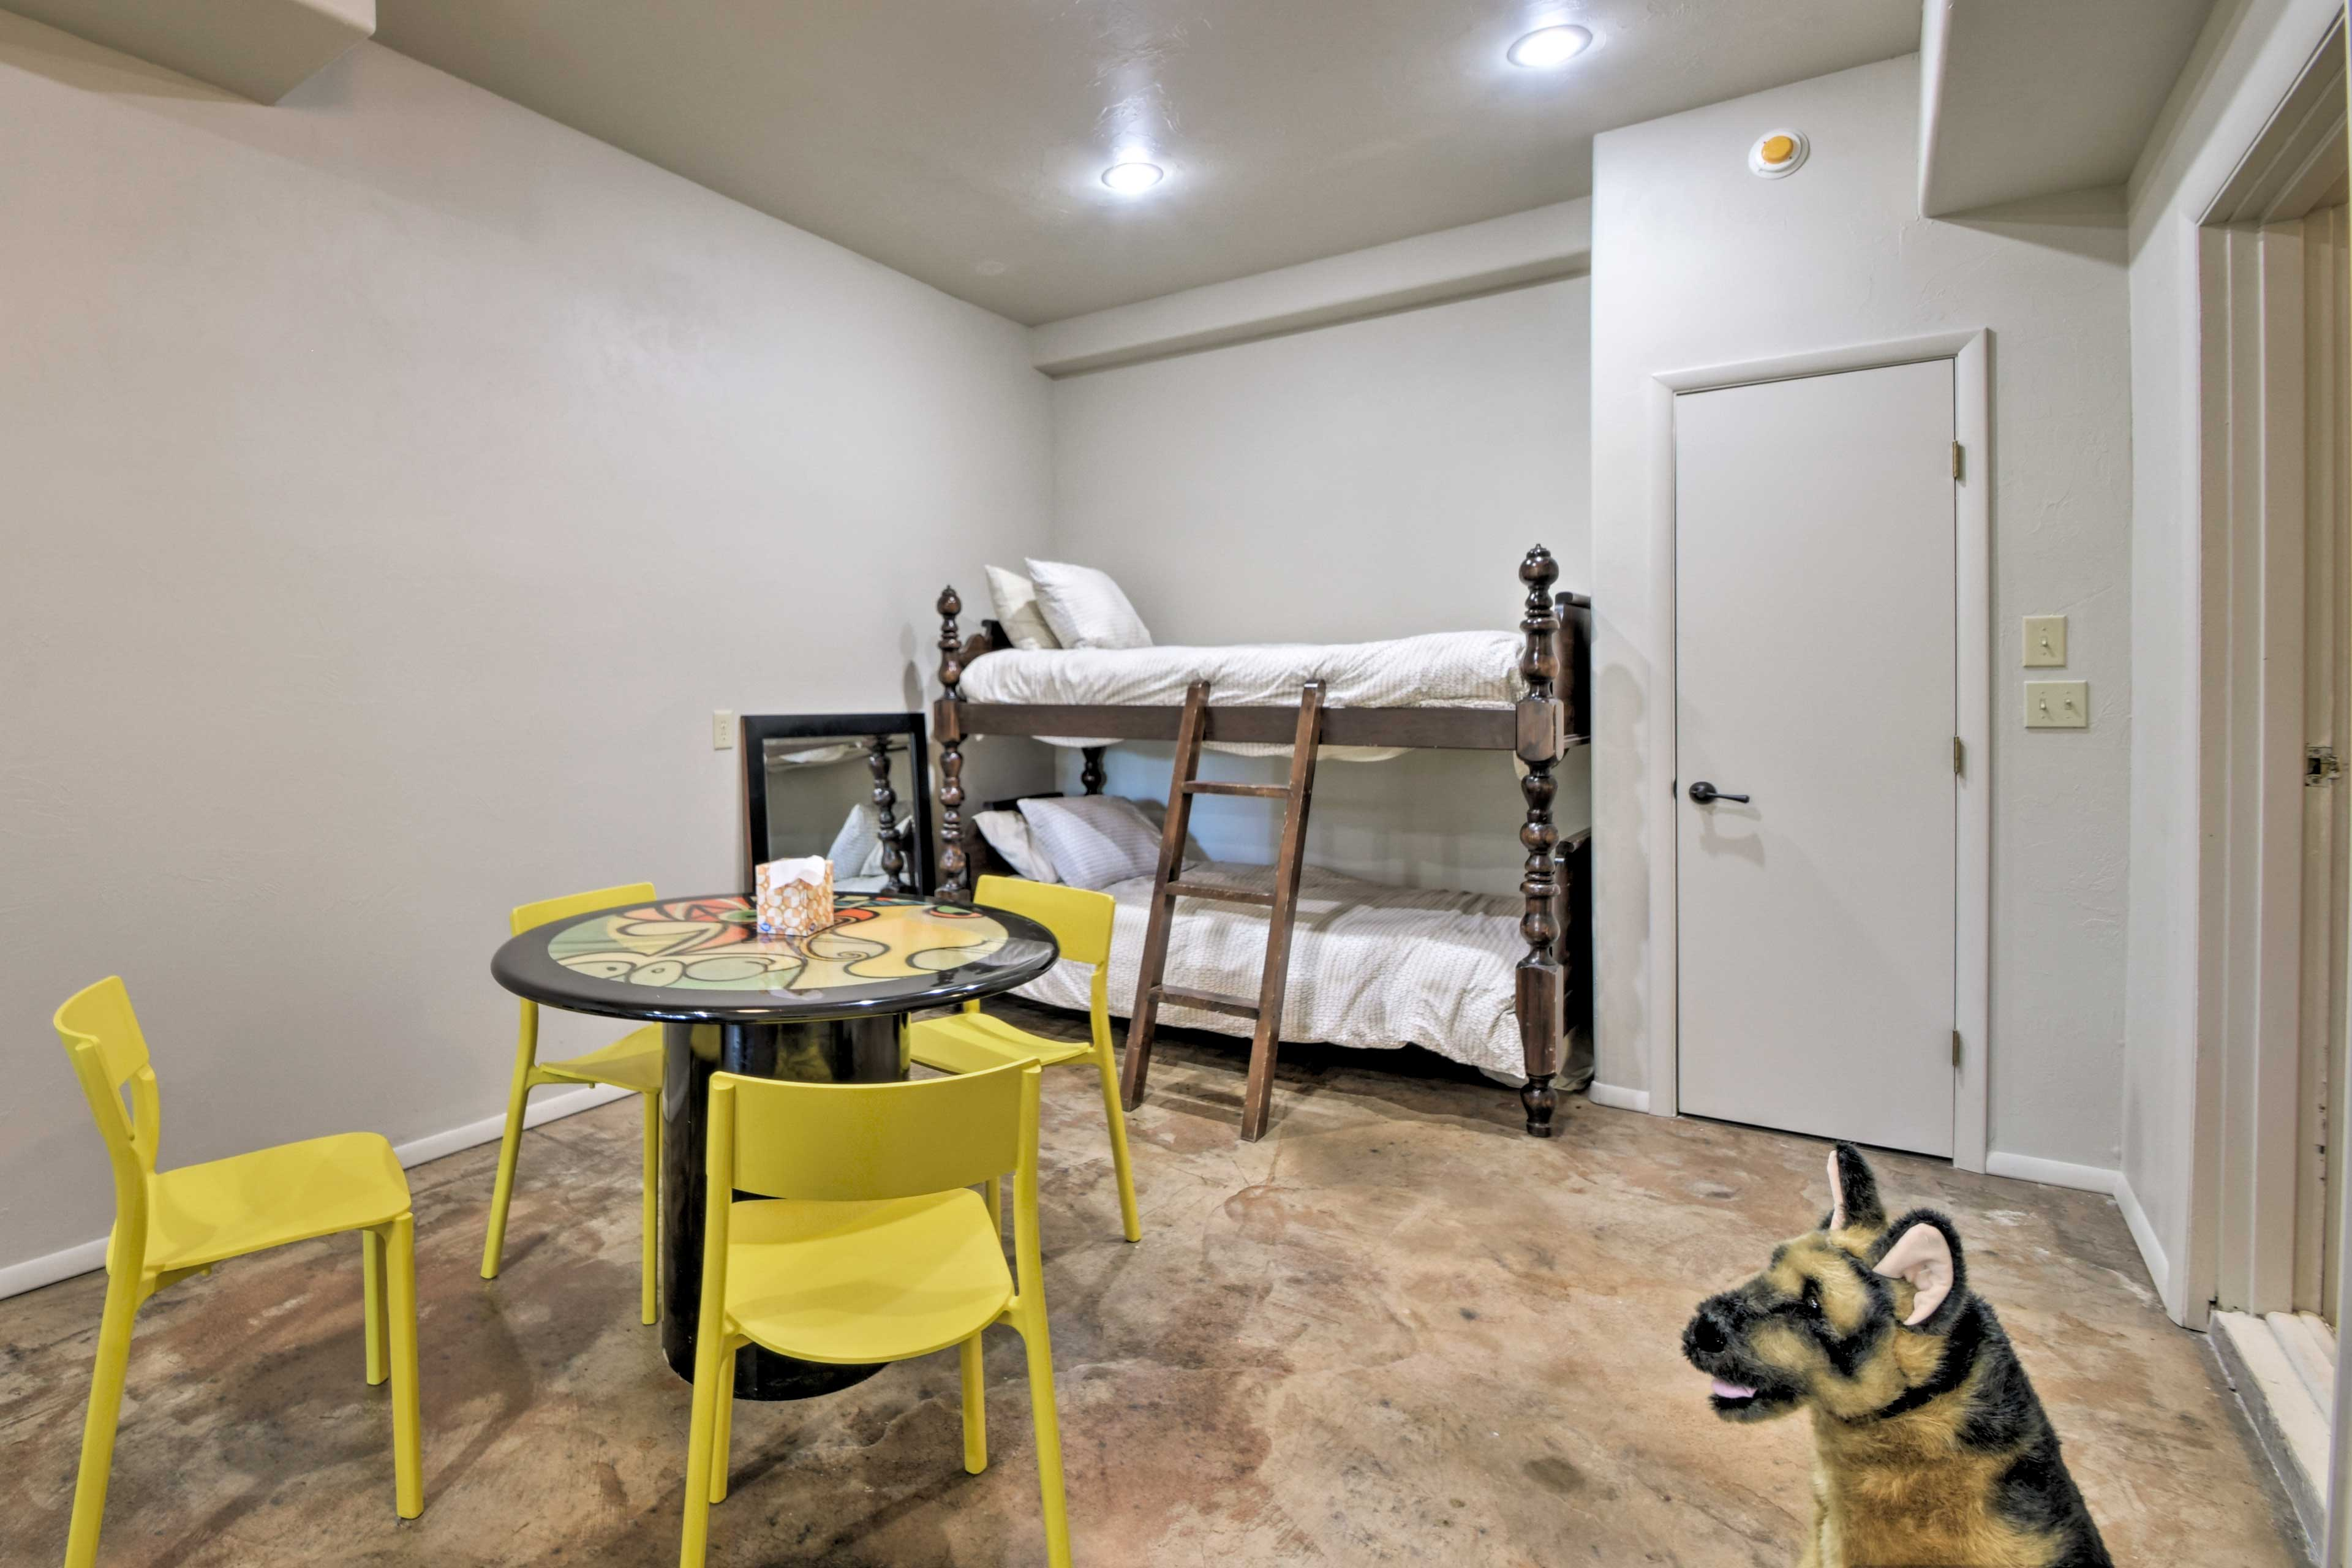 Boasting its own lounge area, the Bunk Room hosts a twin-over-twin bunk bed.